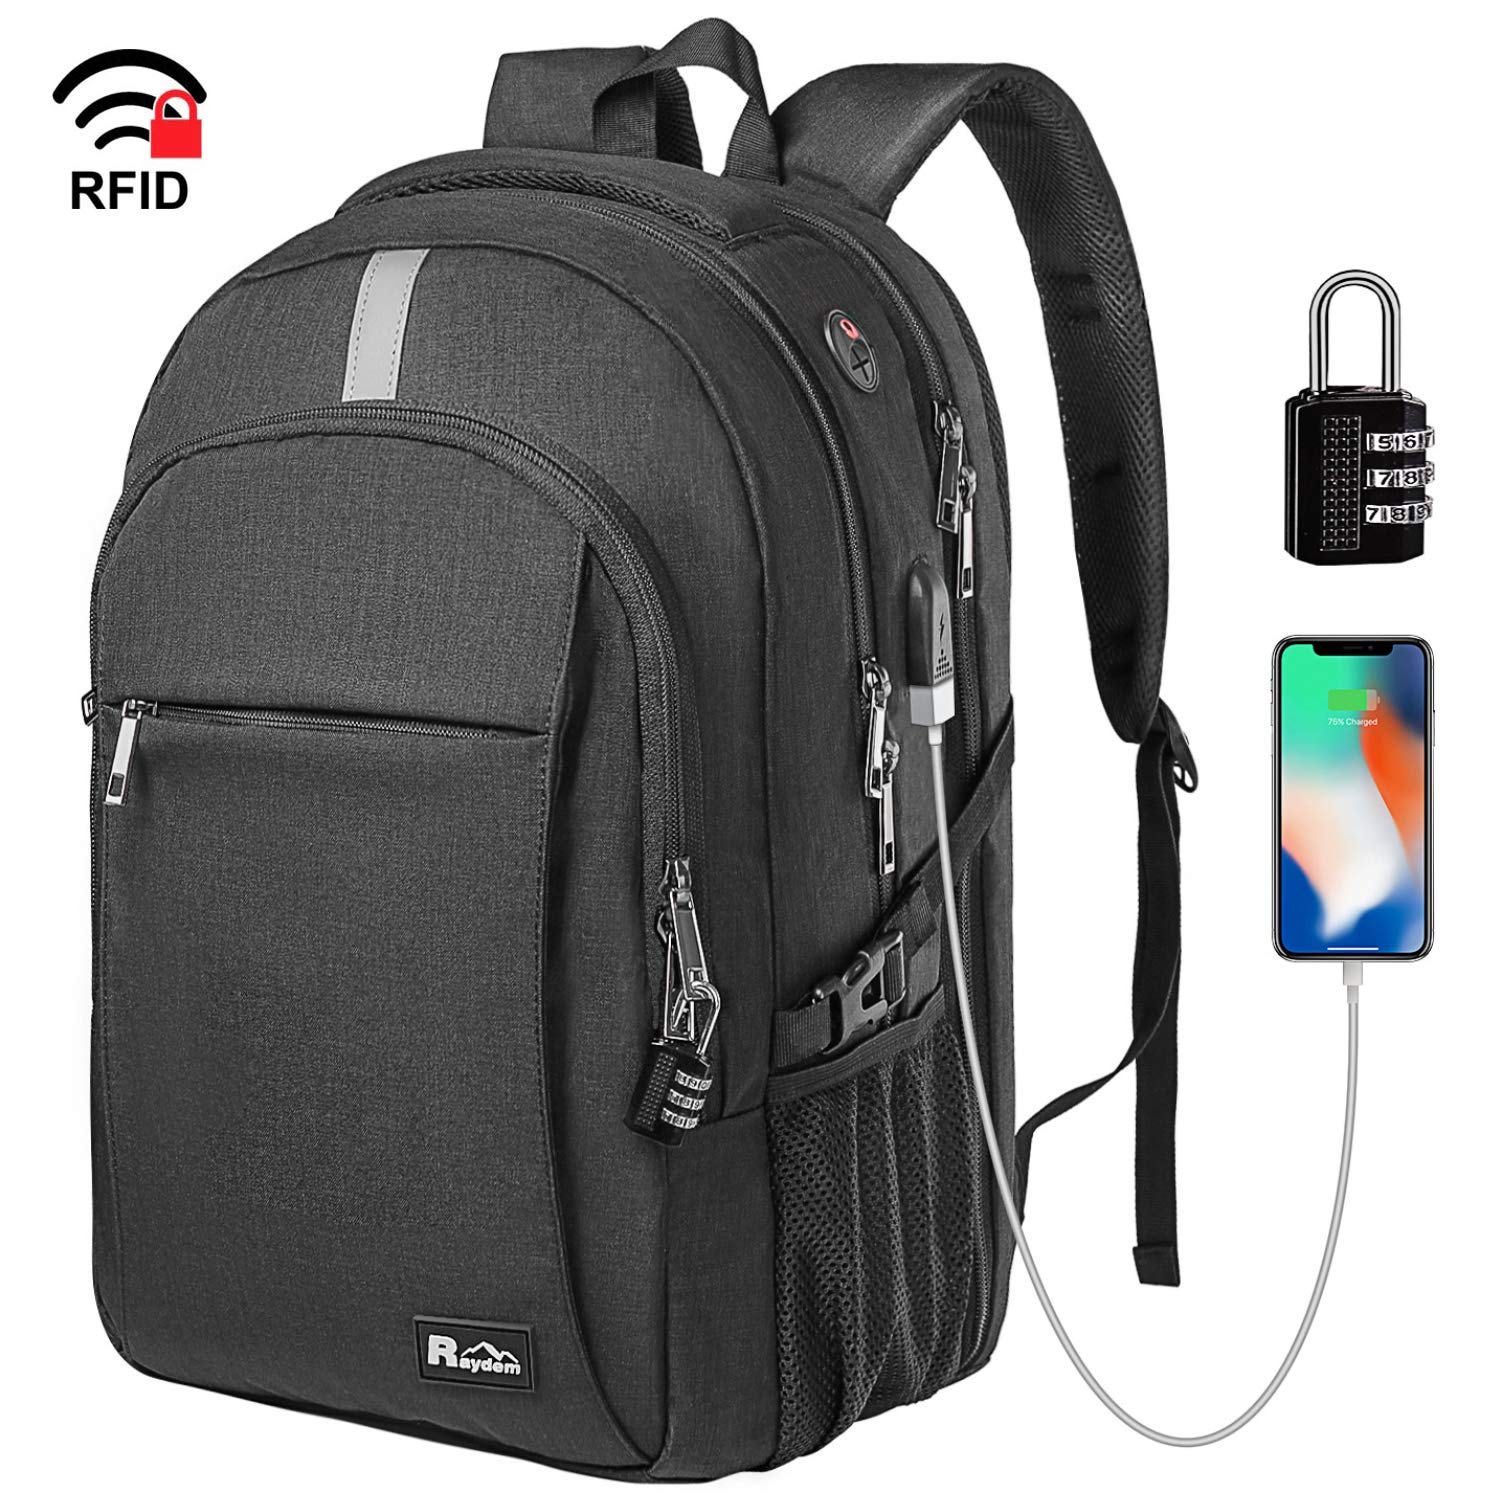 Business Laptop Backpack, Extra Large TSA Friendly Durable Anti-Theft Travel Backpack with USB Charging Port, Water Resistant College School Computer Bag for Women & Men Fits 15.6'' Laptop